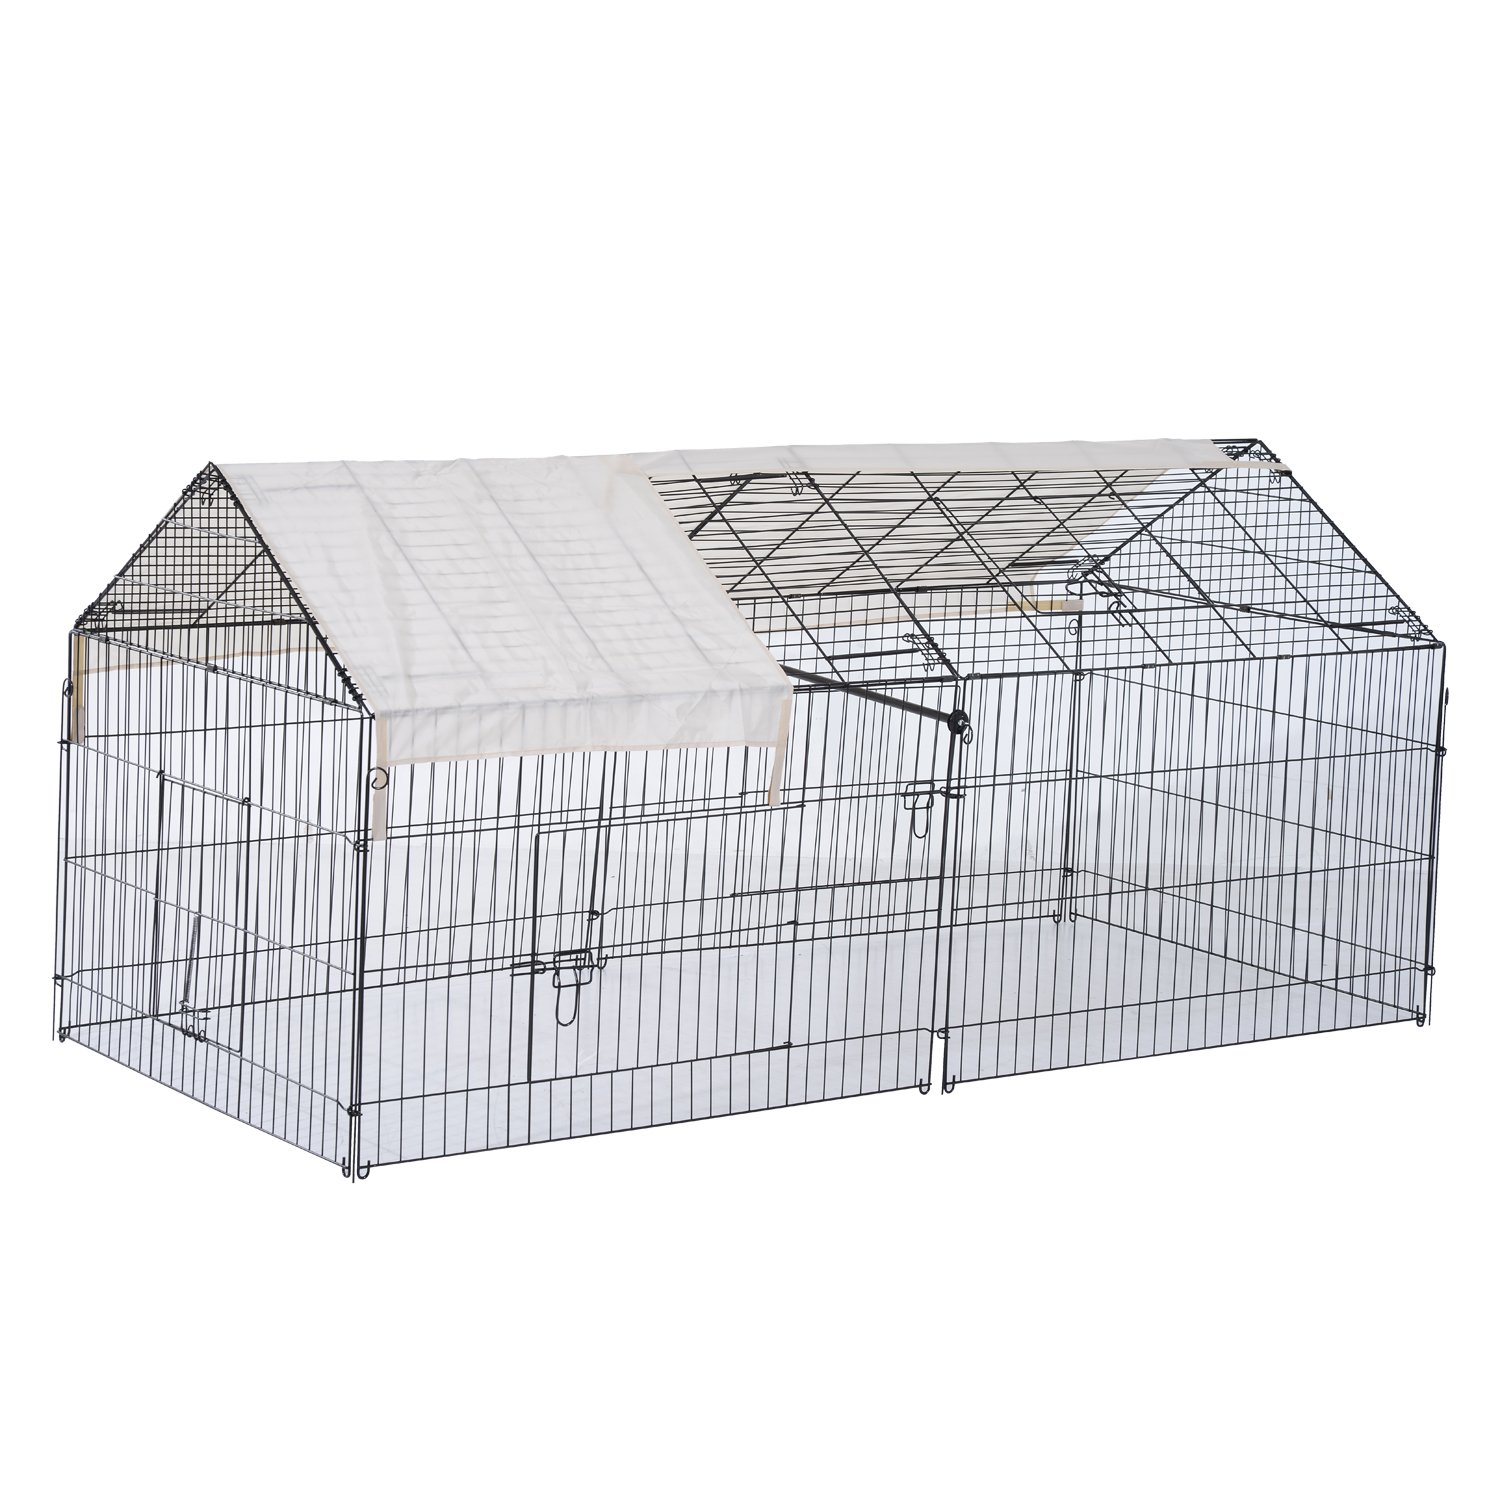 Pawhut 88'' Metal Outdoor Small Animal Enclosure with Protective Cover - Black/White